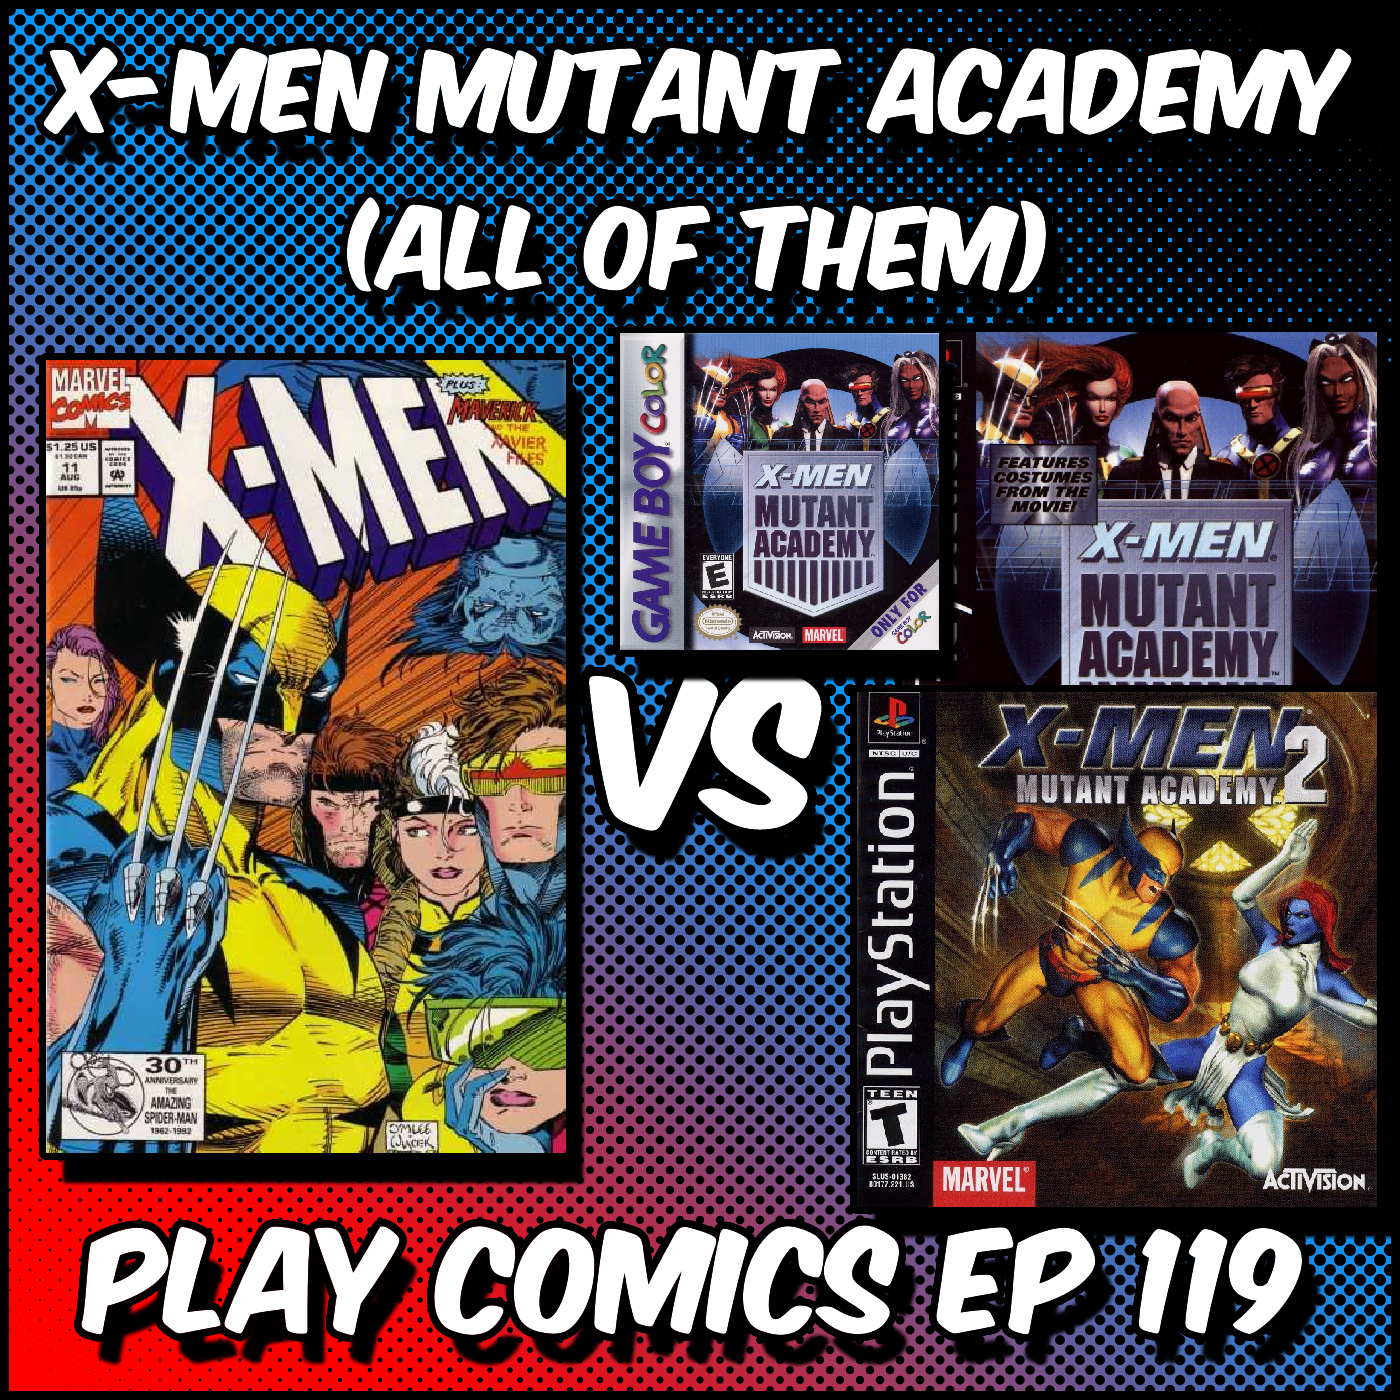 Mutant Academy (All of Them) With Billy